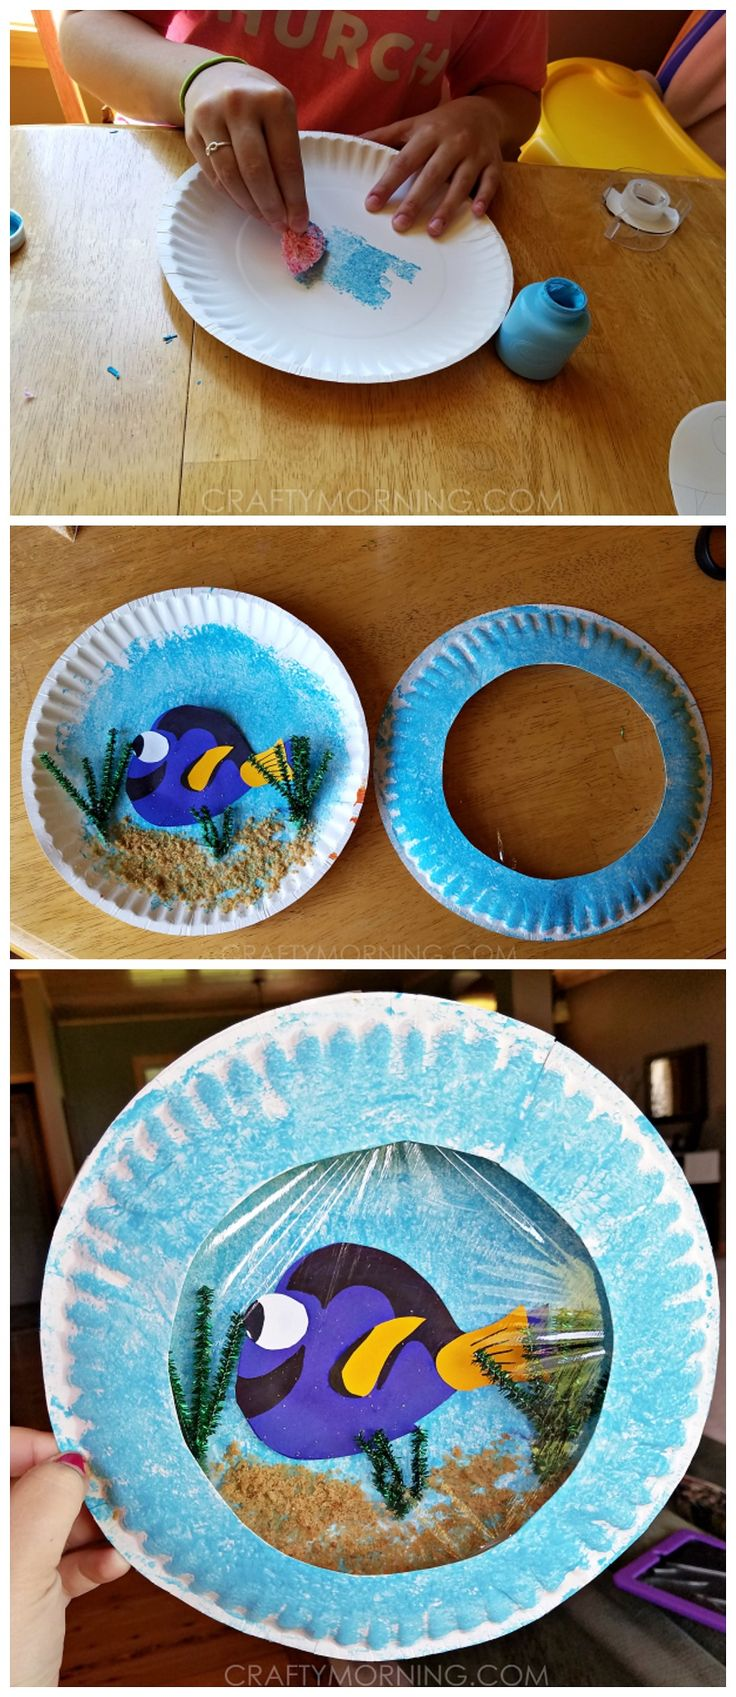 17 best ideas about crafts for kids on pinterest kid for Boys arts and crafts